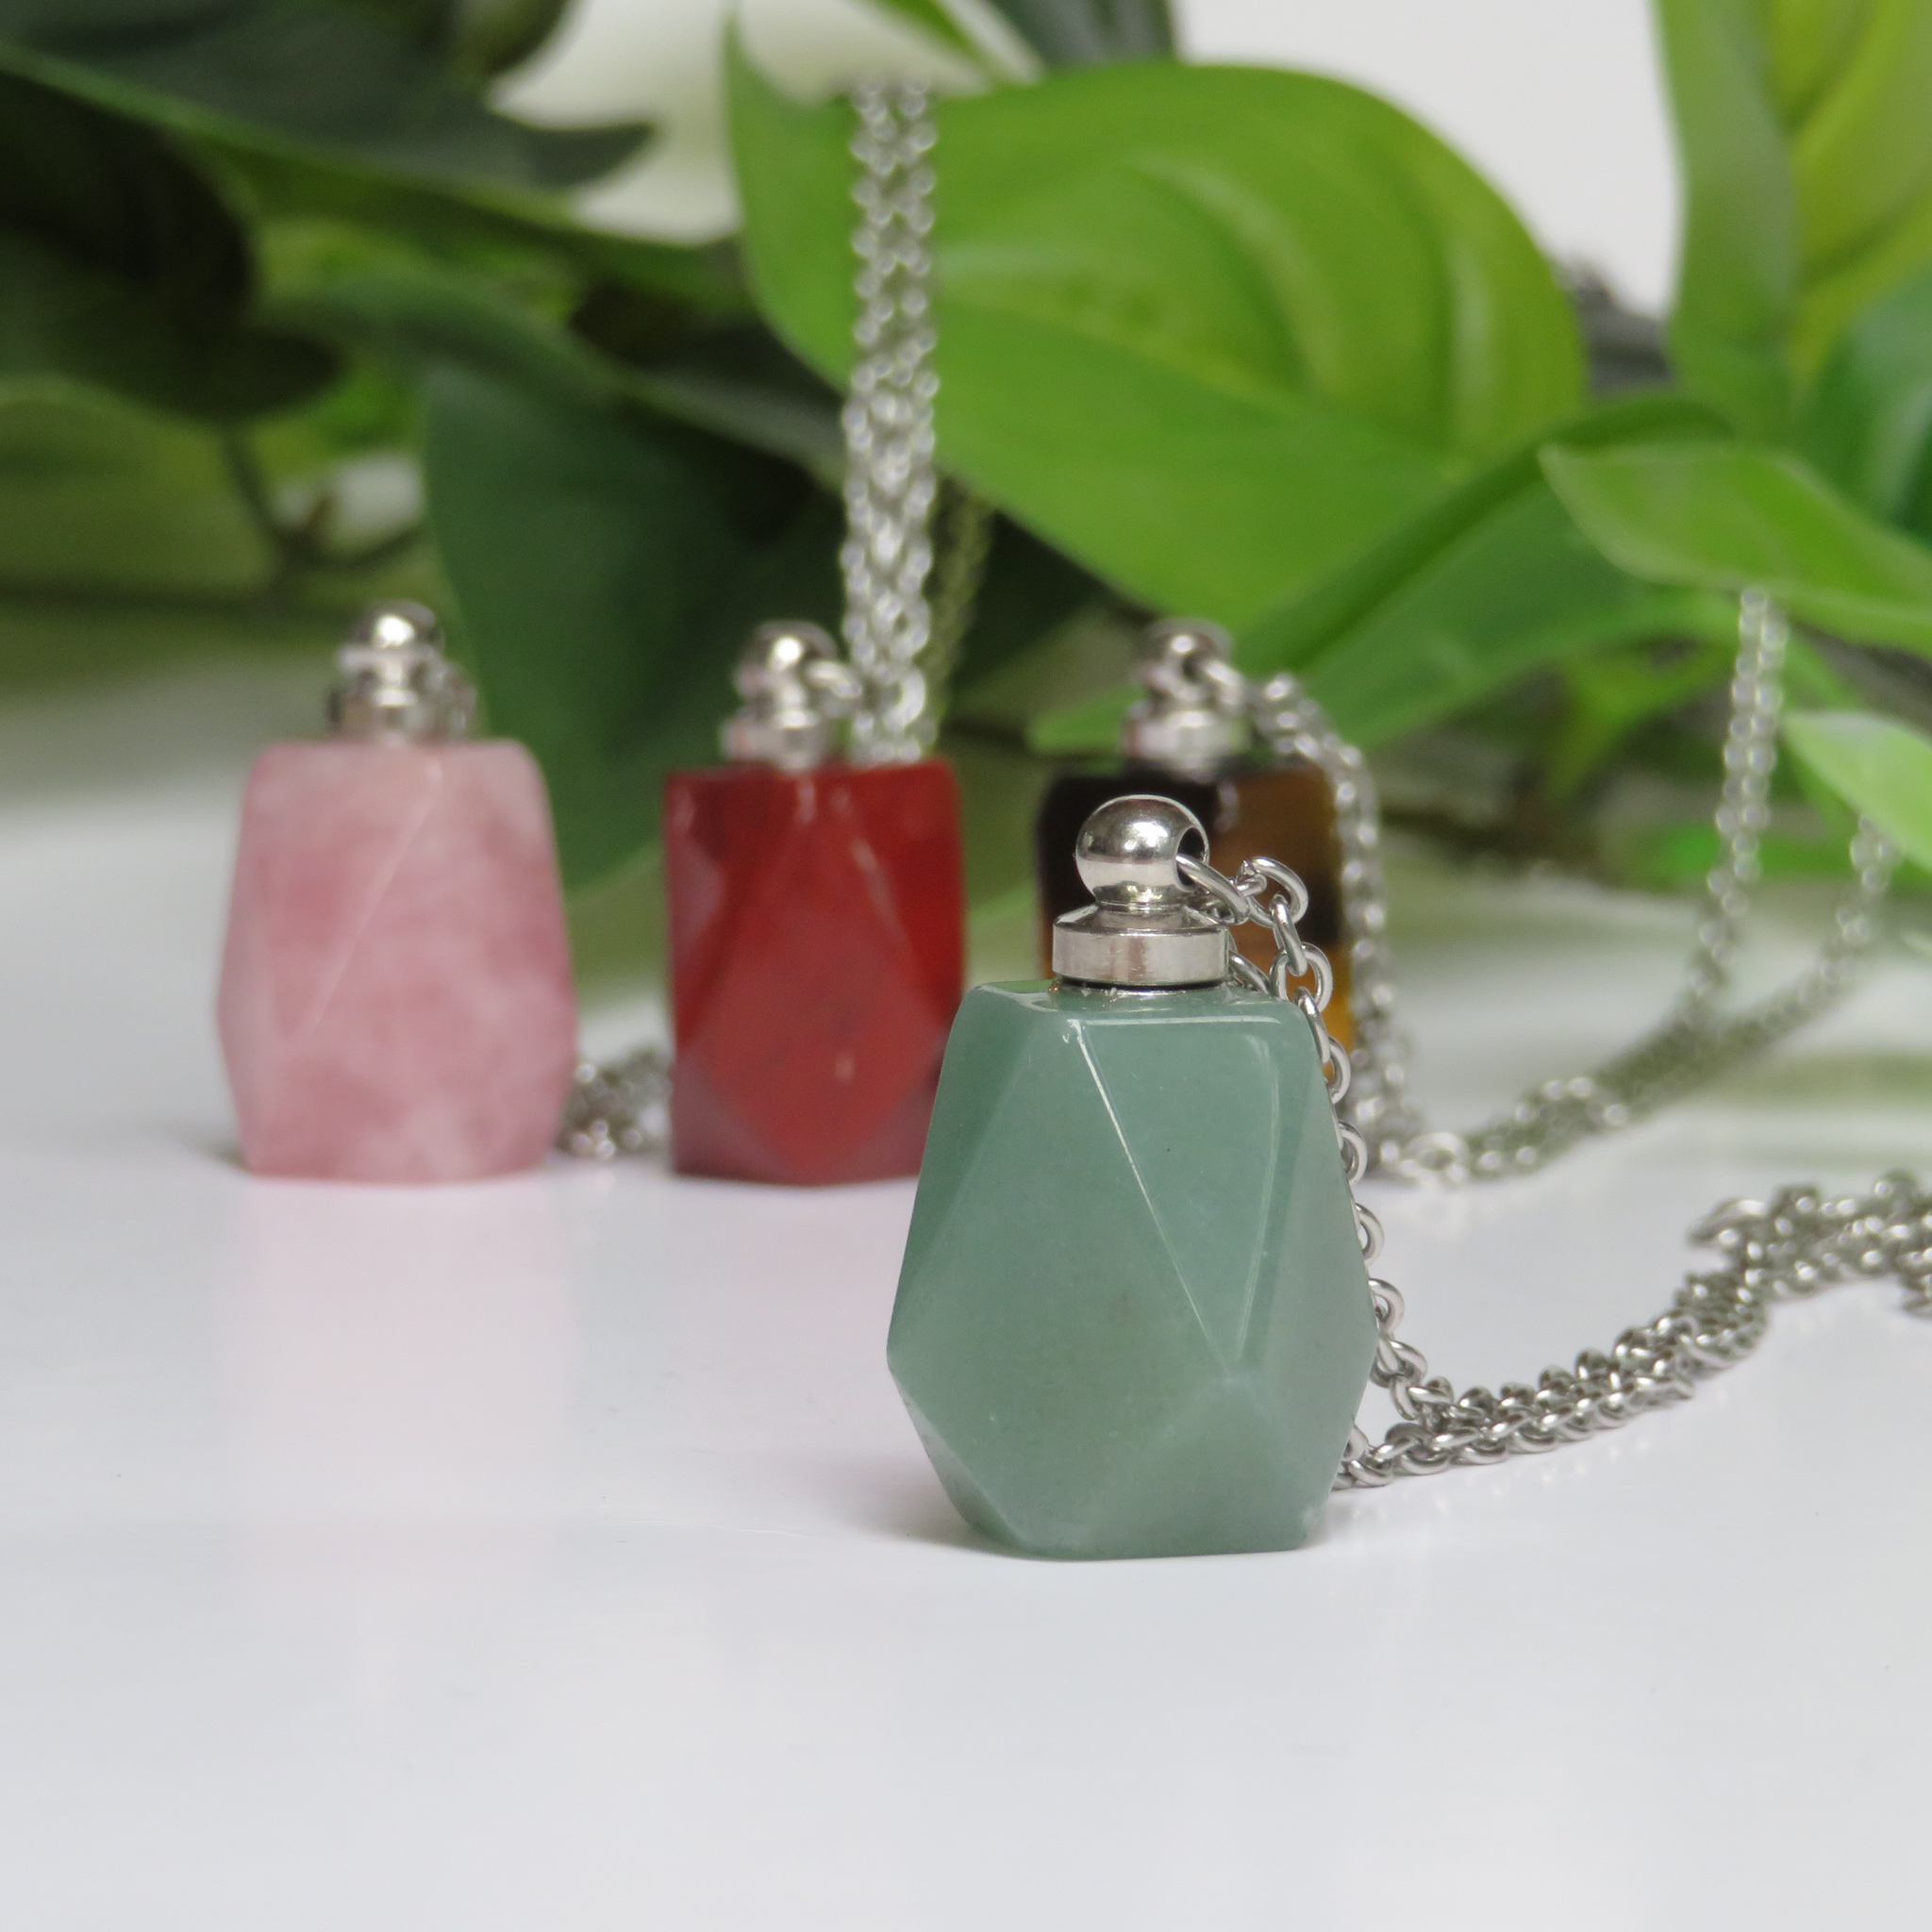 Green Aventurine Perfume Bottle Necklace